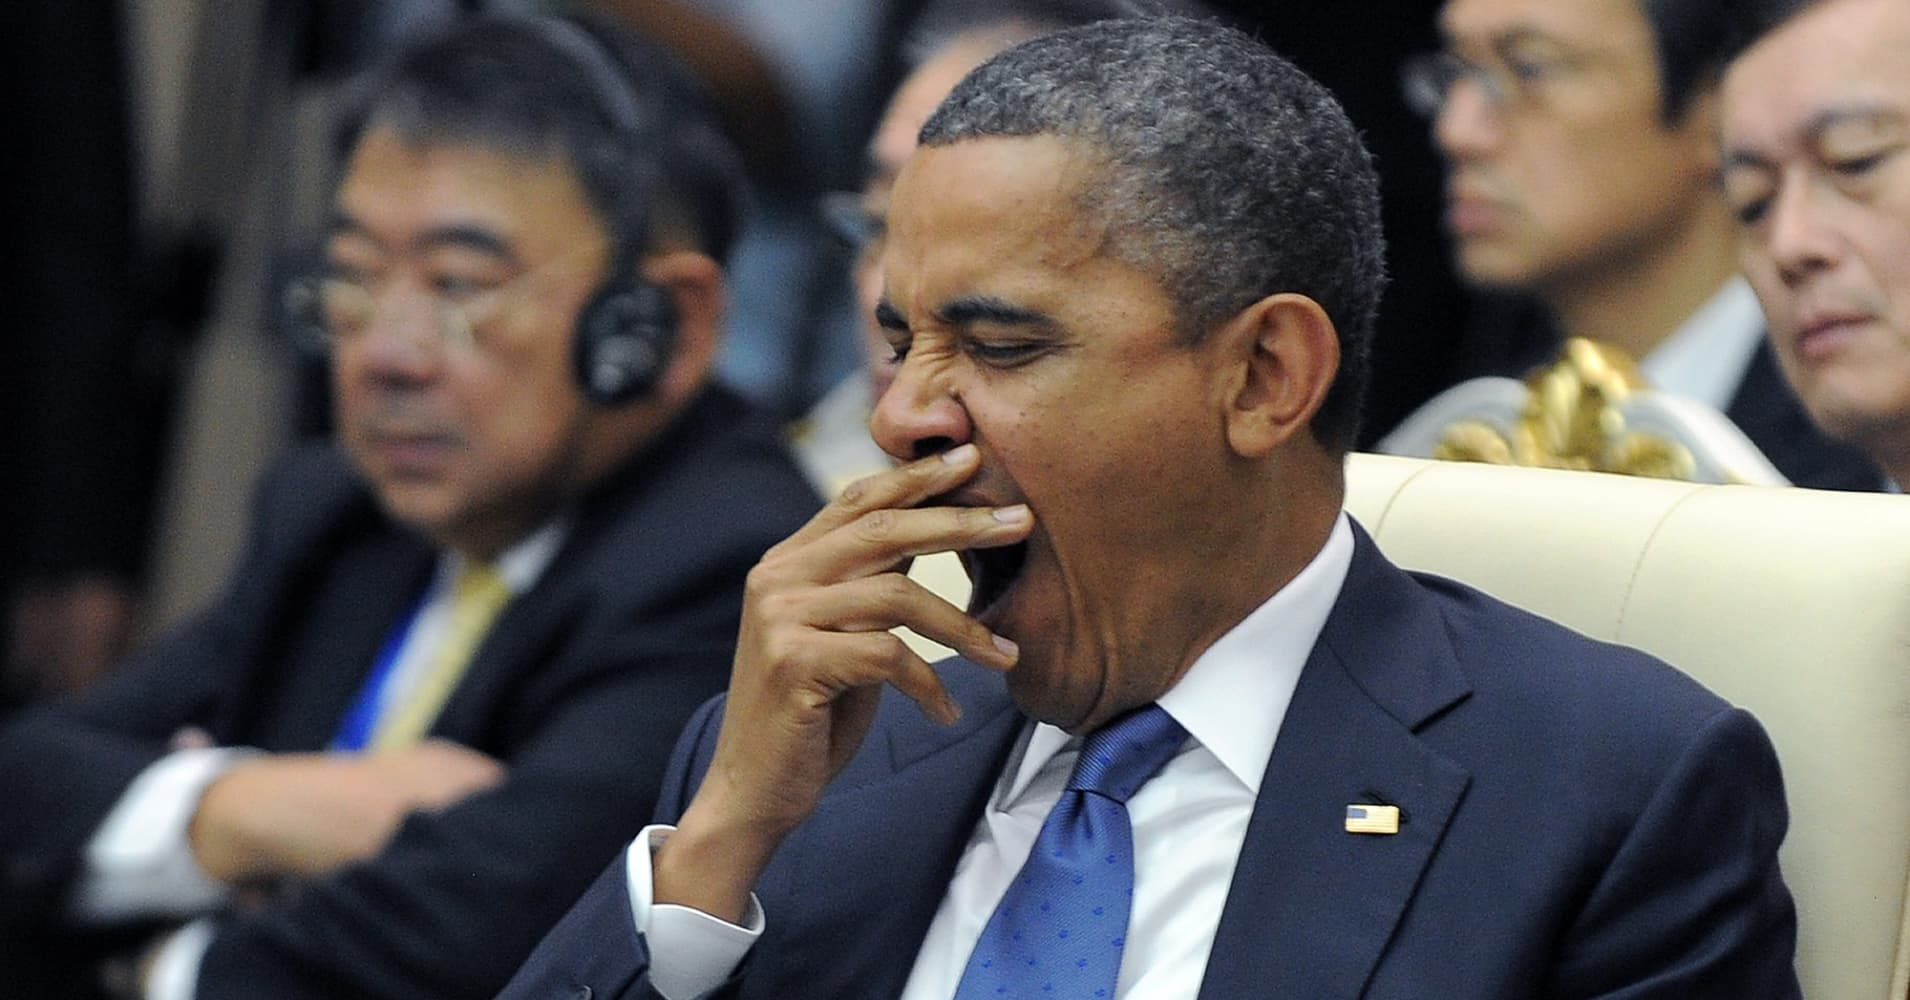 US President Barack Obama yawns as he attends an East Asian Summit Plenary Session at the Peace Palace in Phnom Penh on November 20, 2012.